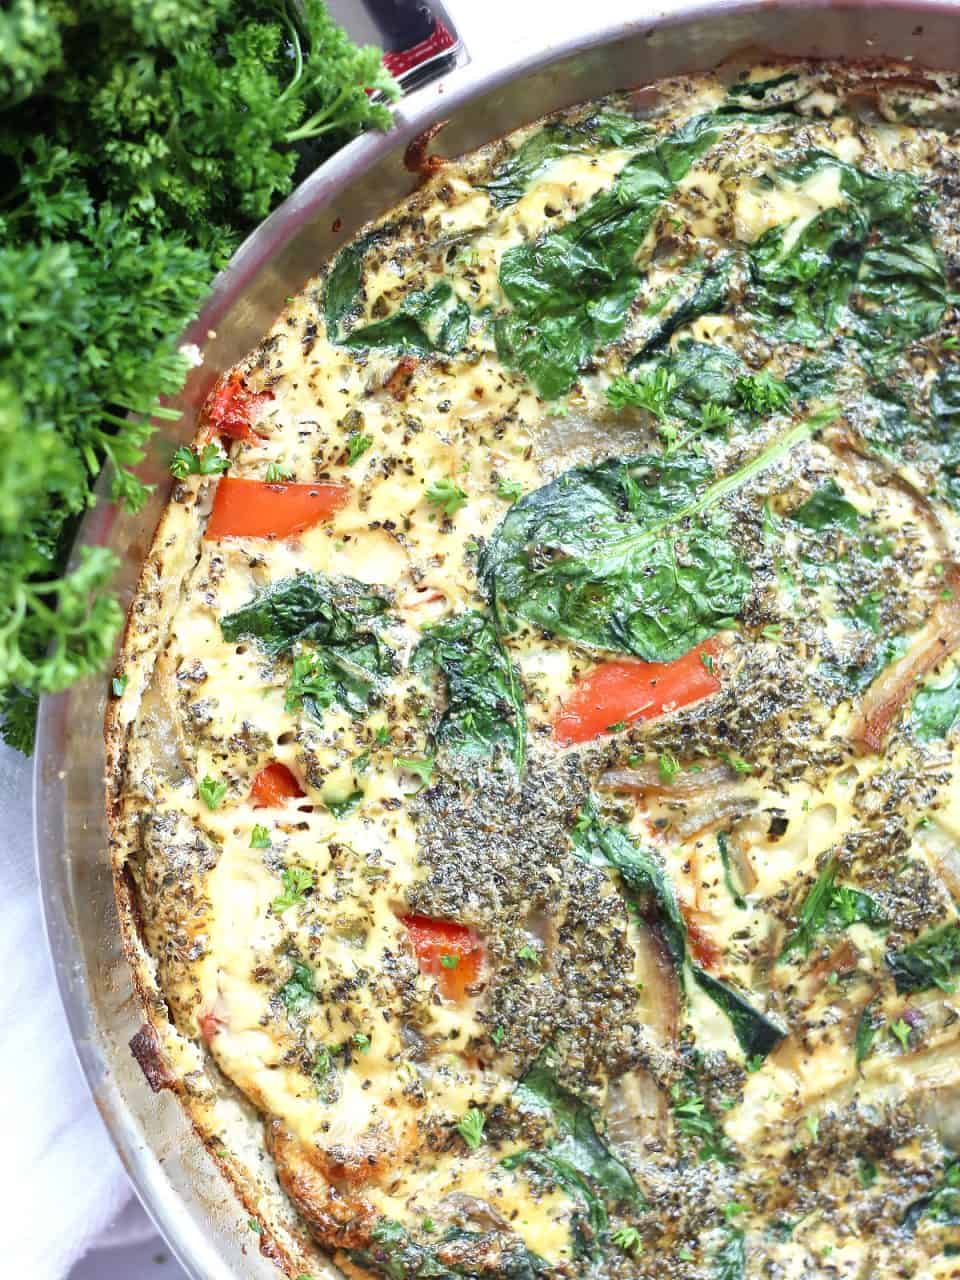 Close up of the egg white frittata in a skillet ready to serve.